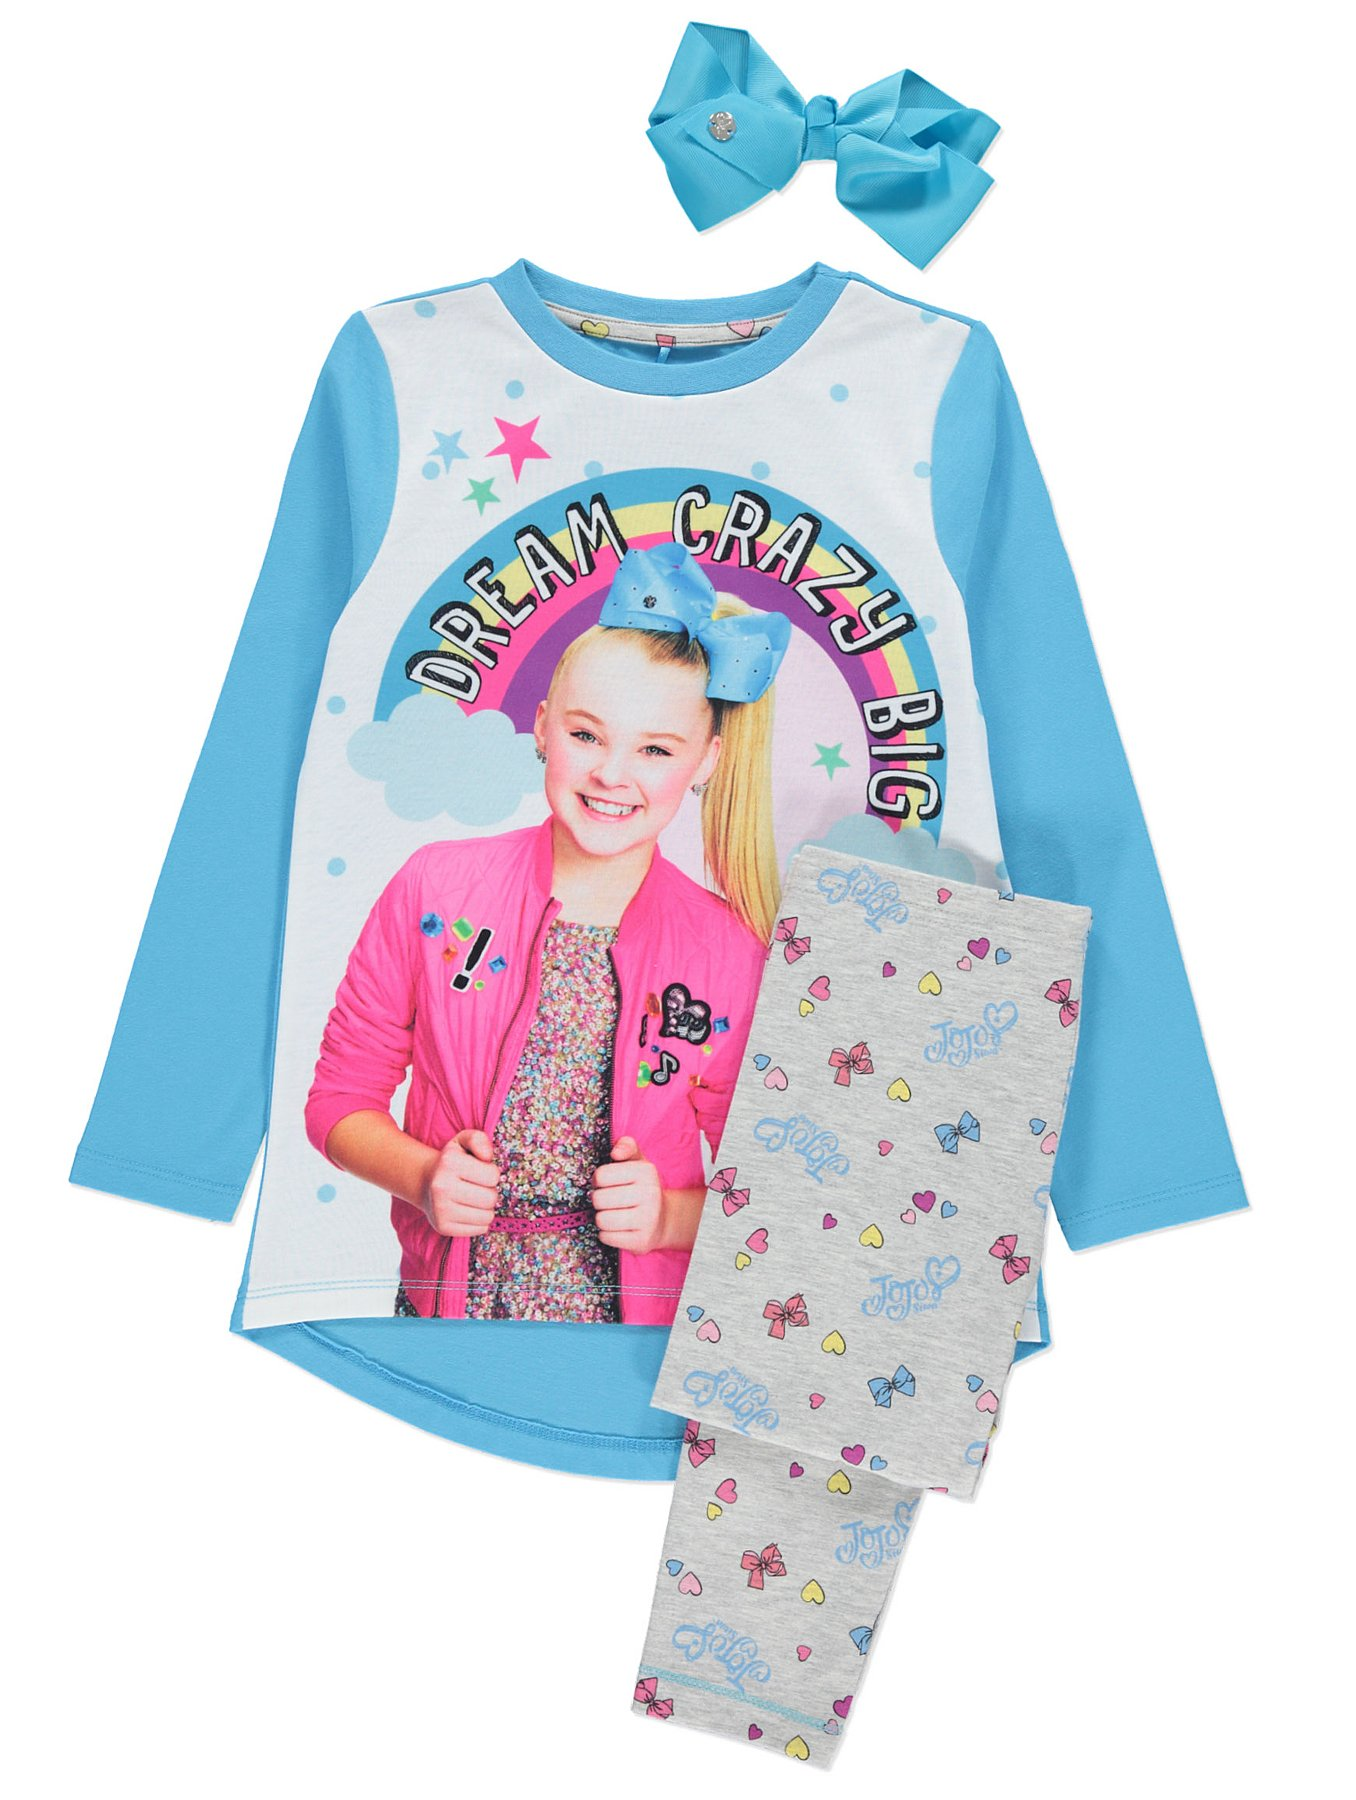 JoJo Siwa Pyjama and Bow Set | Kids | George